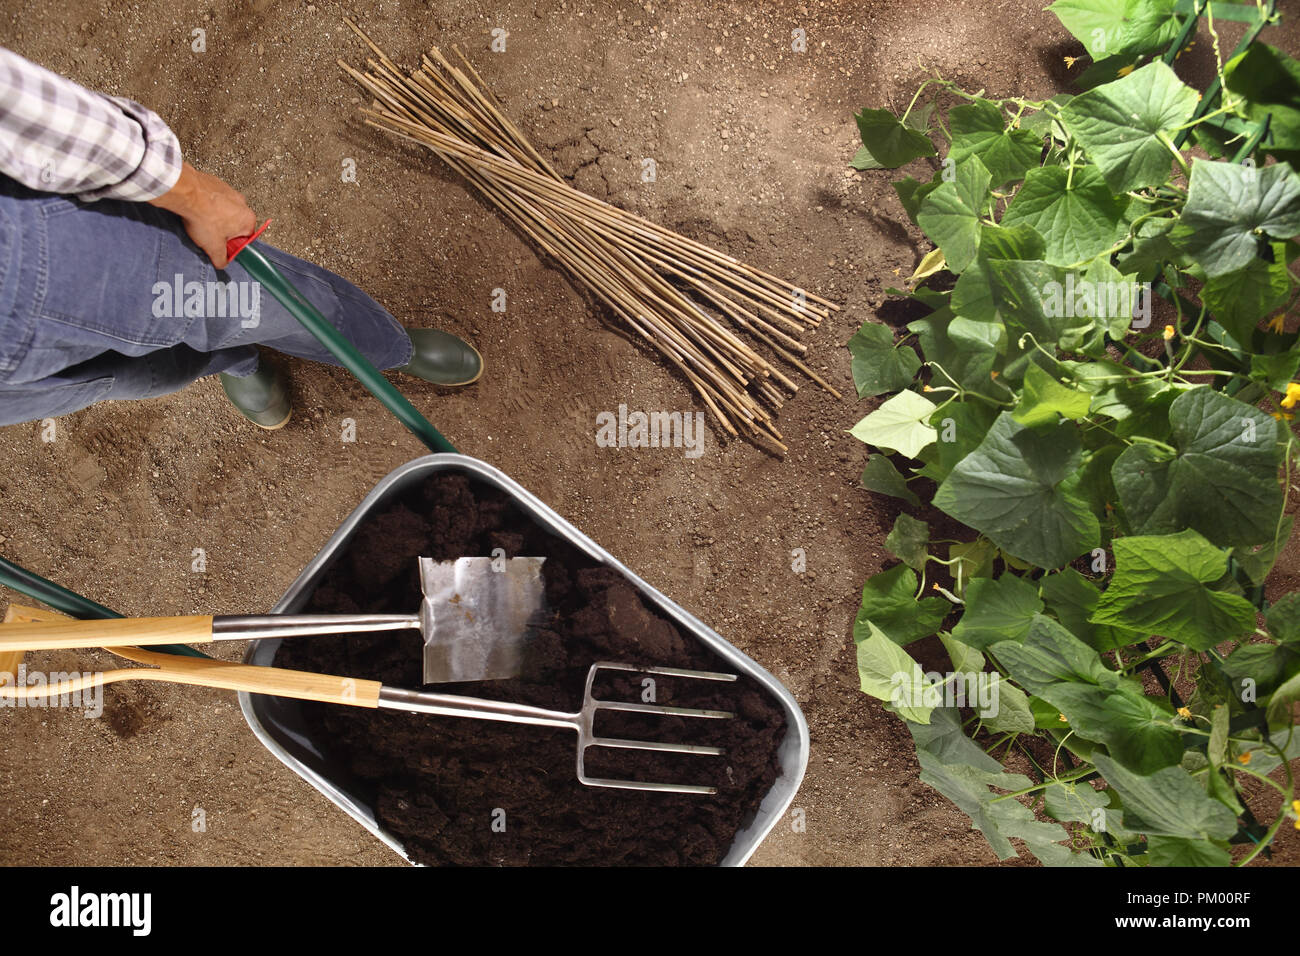 Fertilizer Vegetable Stock Photos & Fertilizer Vegetable Stock ...